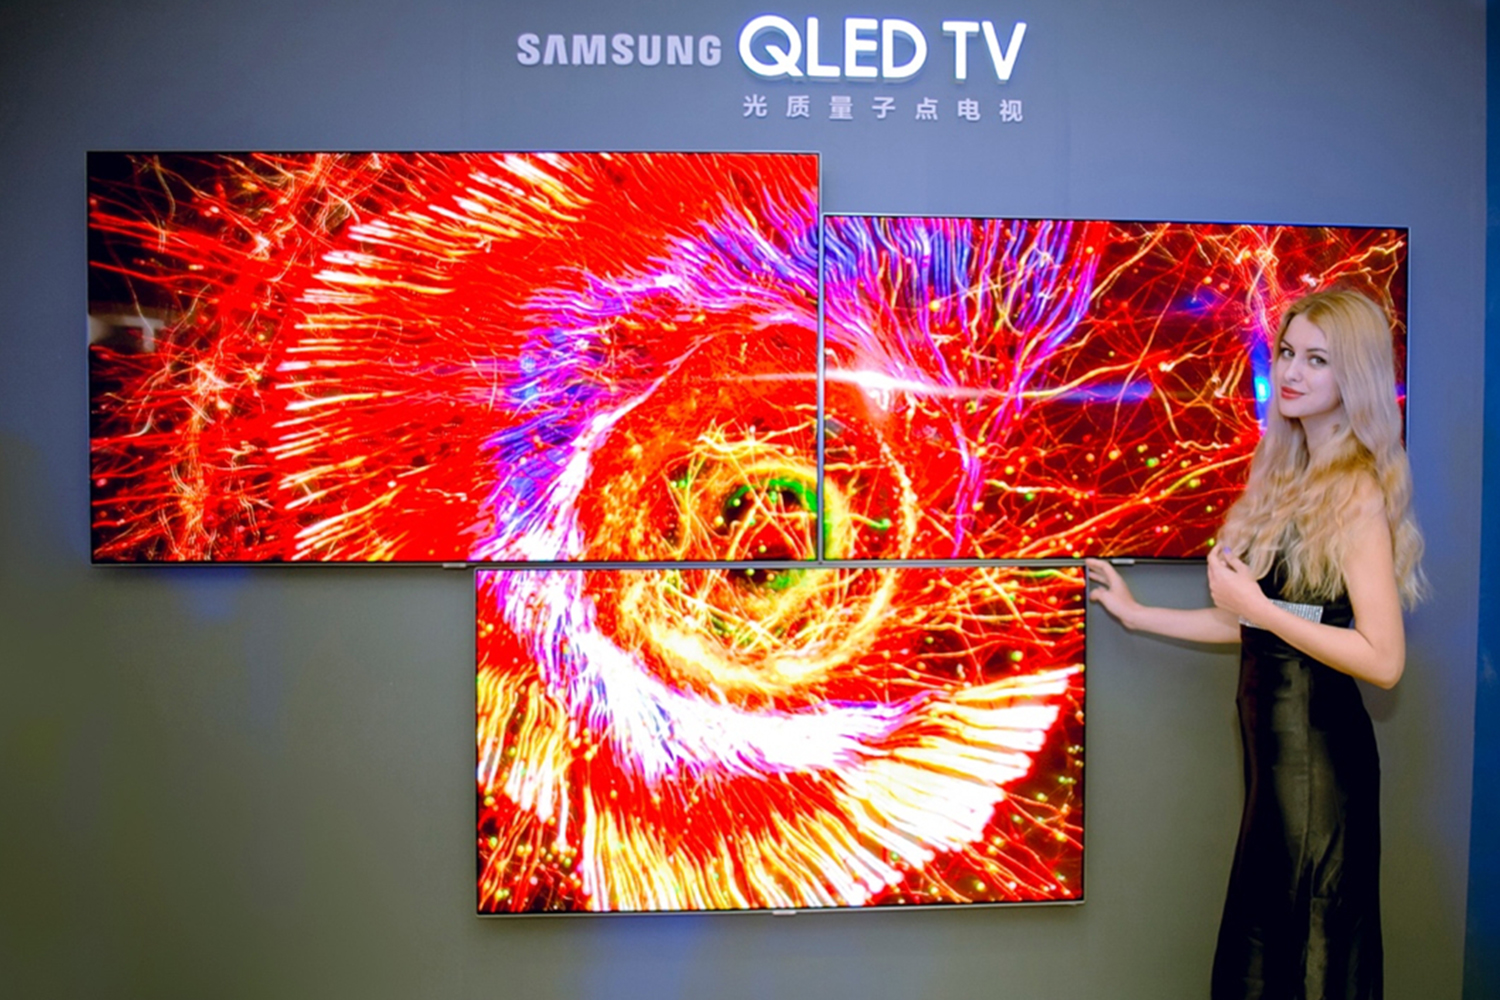 samsung forges alliance with rivals to bolster qled against lg 39 s oled. Black Bedroom Furniture Sets. Home Design Ideas